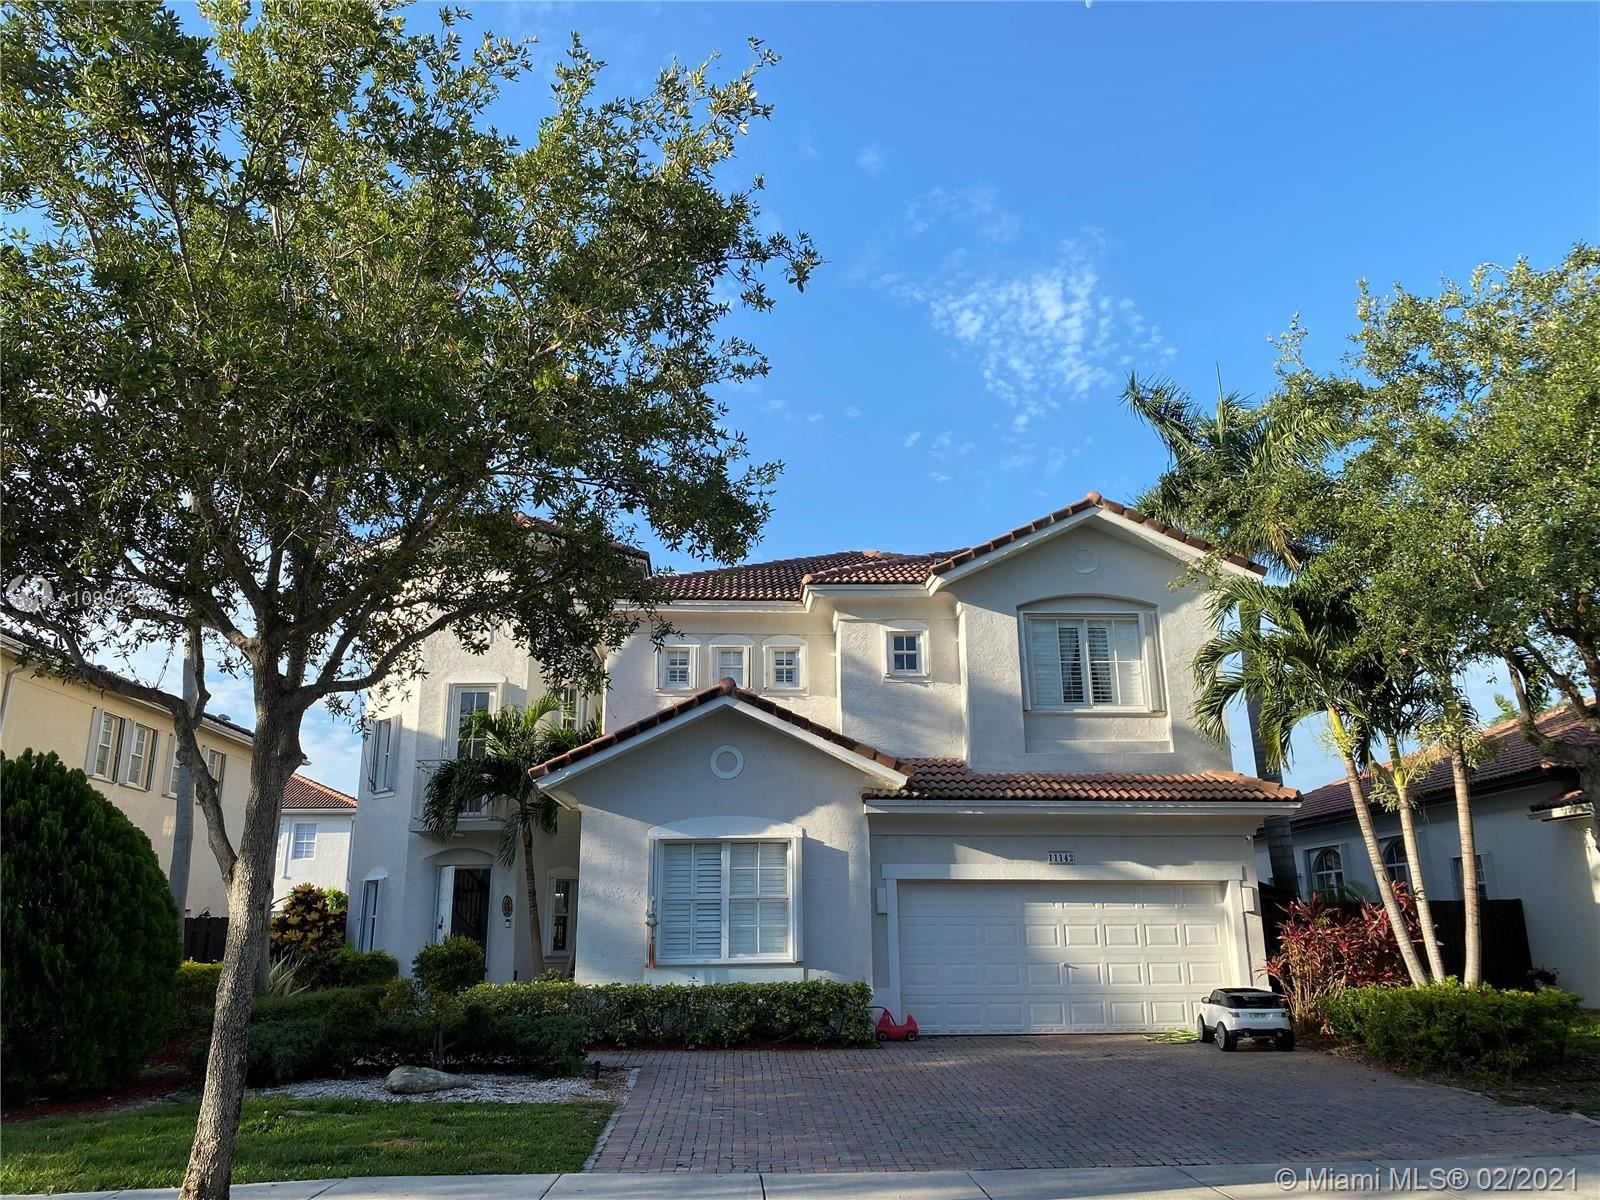 11142 NW 71st Ter, Doral, FL 33178 - #: A10994272